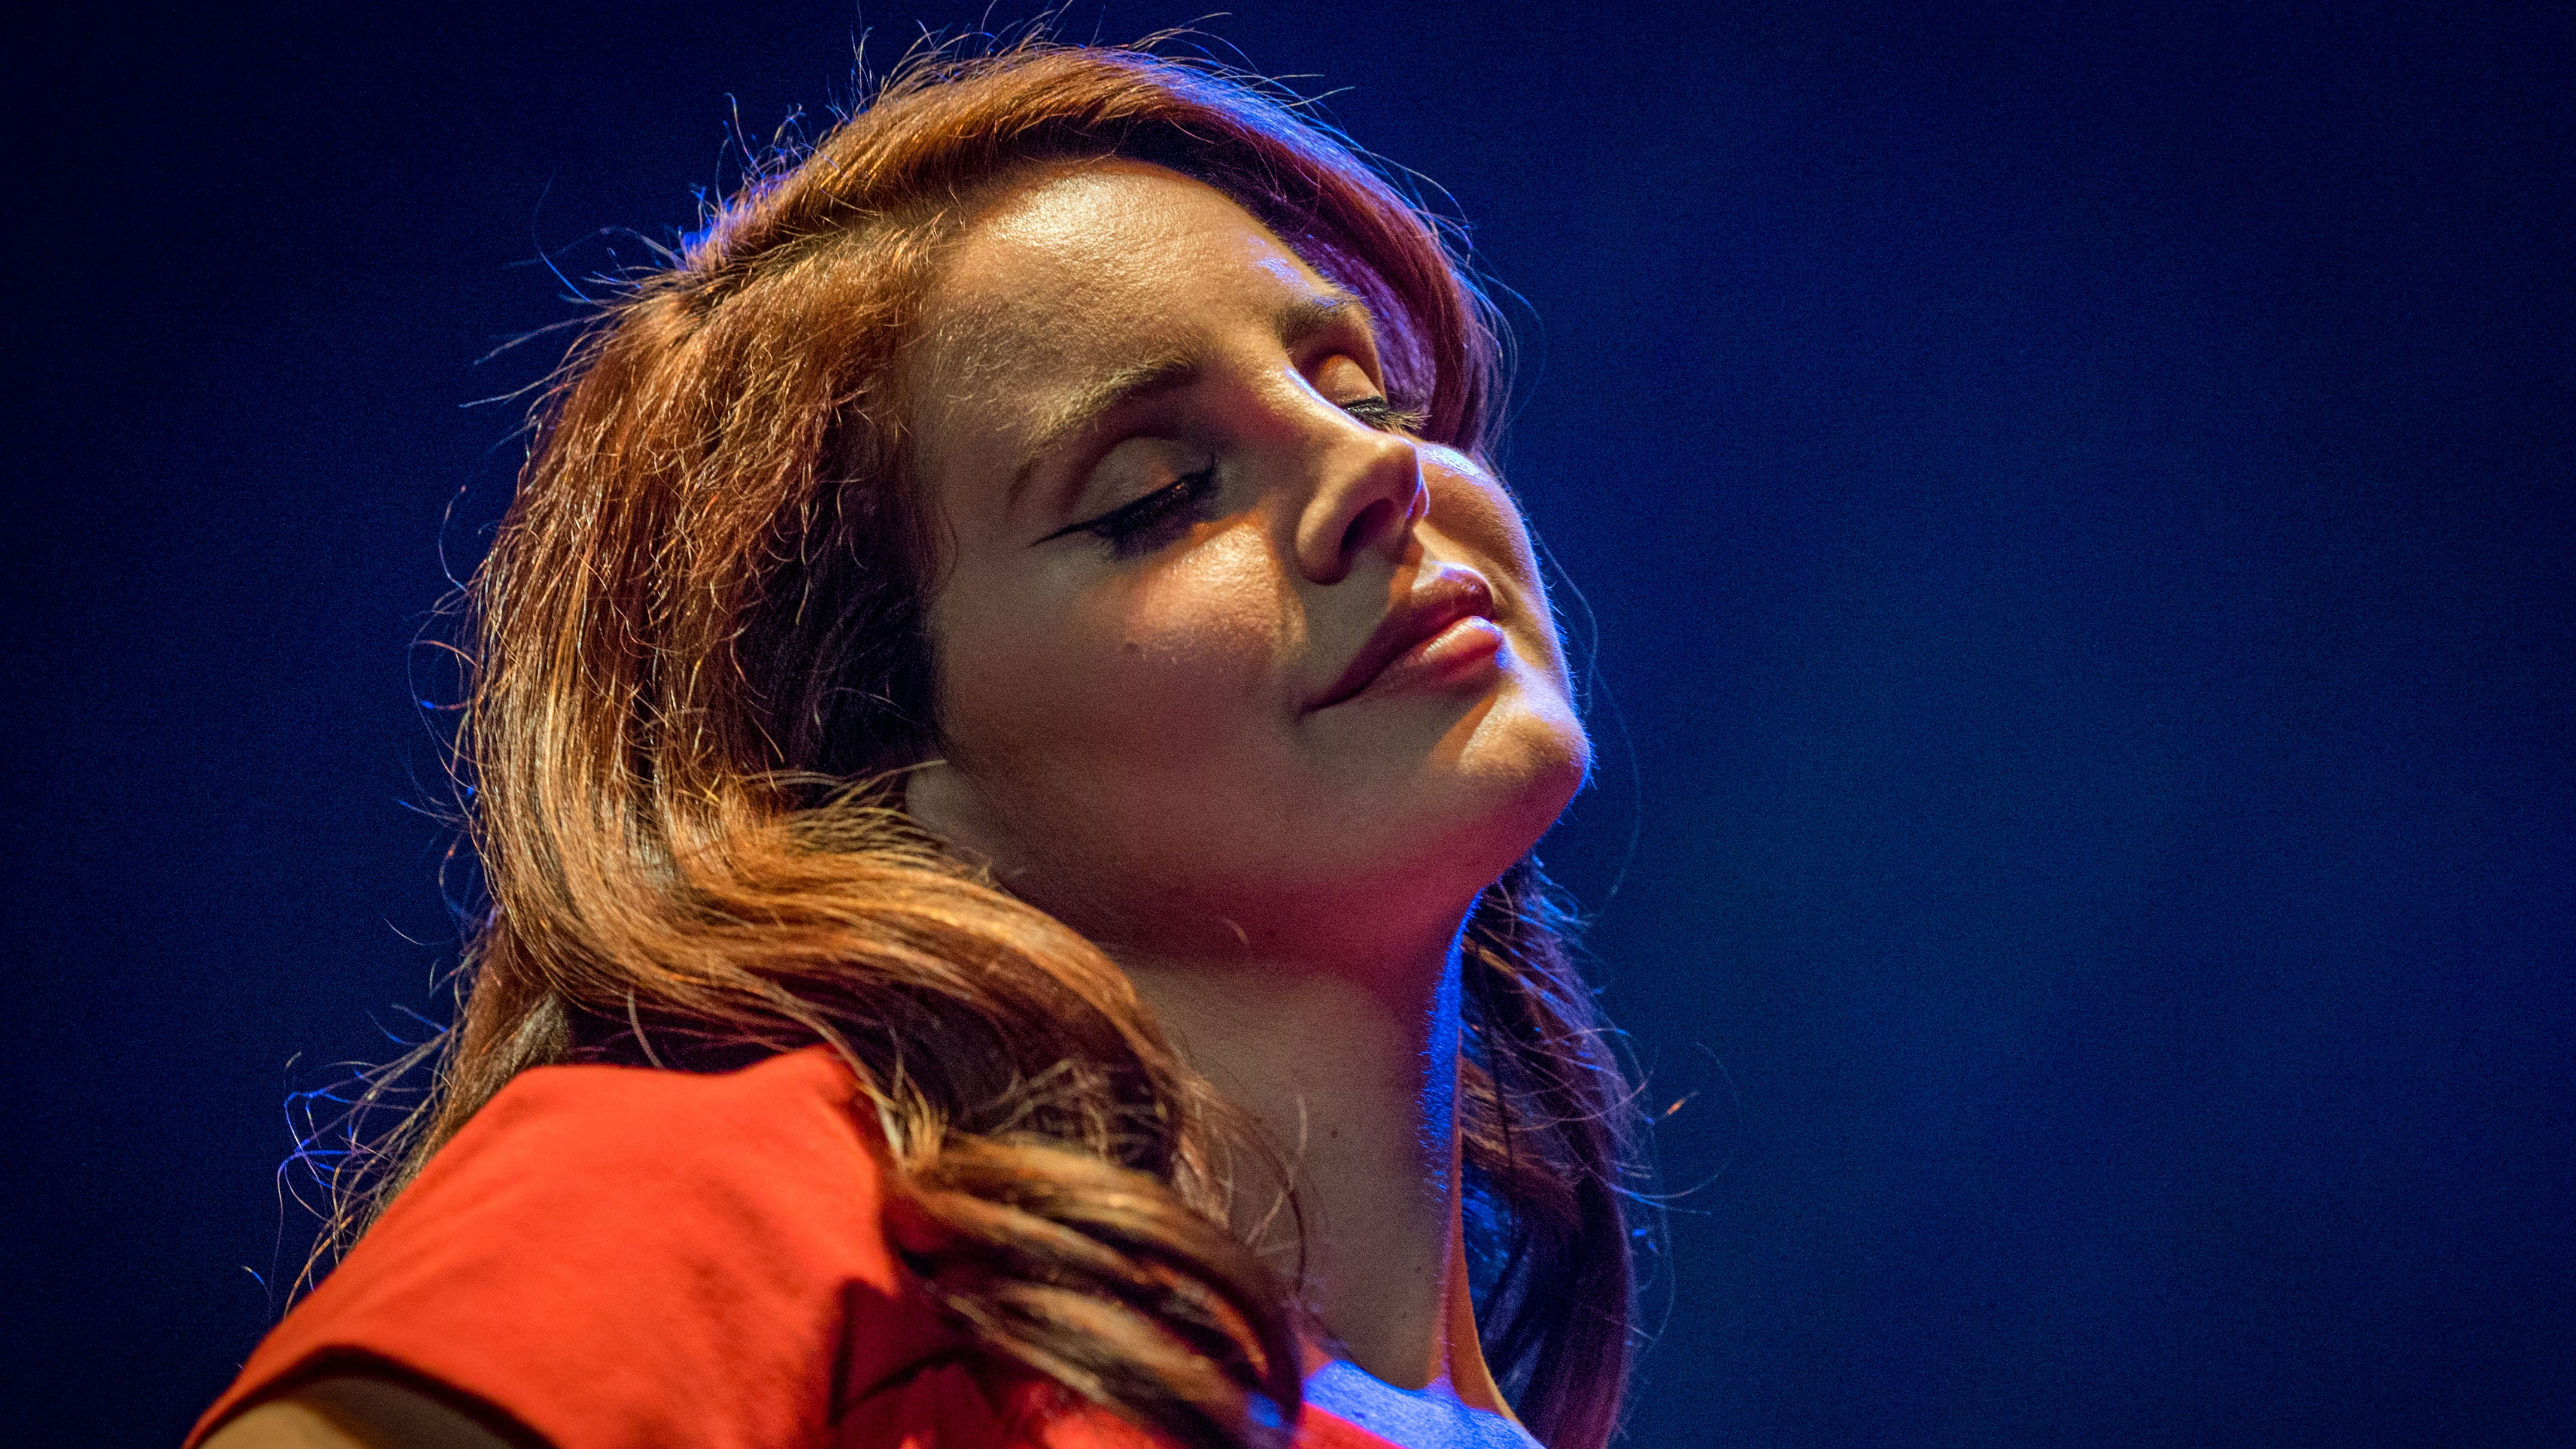 Lana Del Rey Totally Cast A Spell On Donald Trump